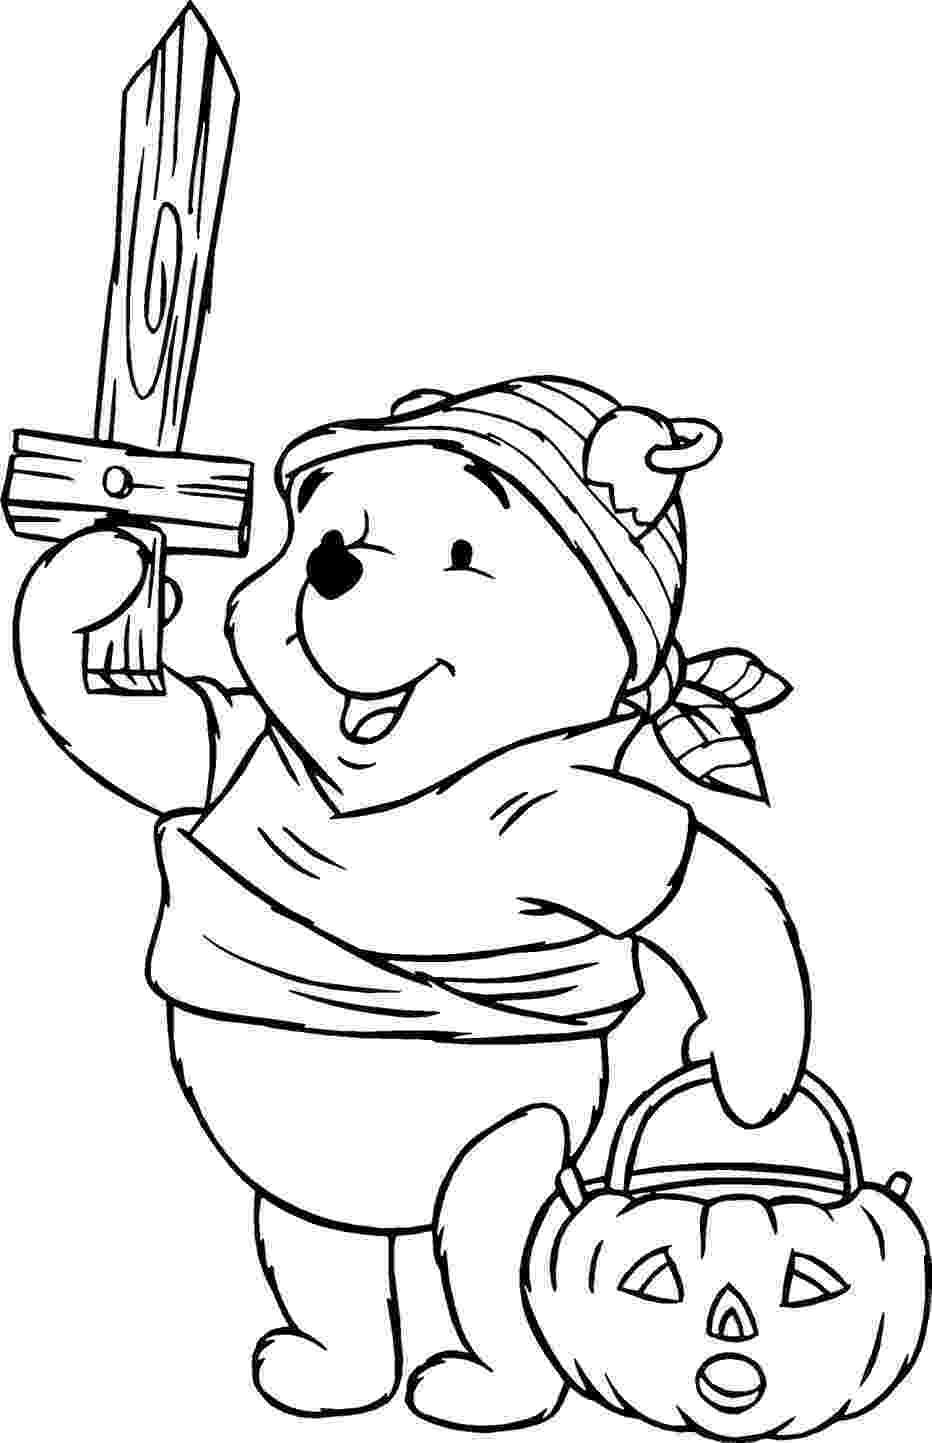 printable coloring pages for kids free printable elsa coloring pages for kids best printable coloring pages for kids